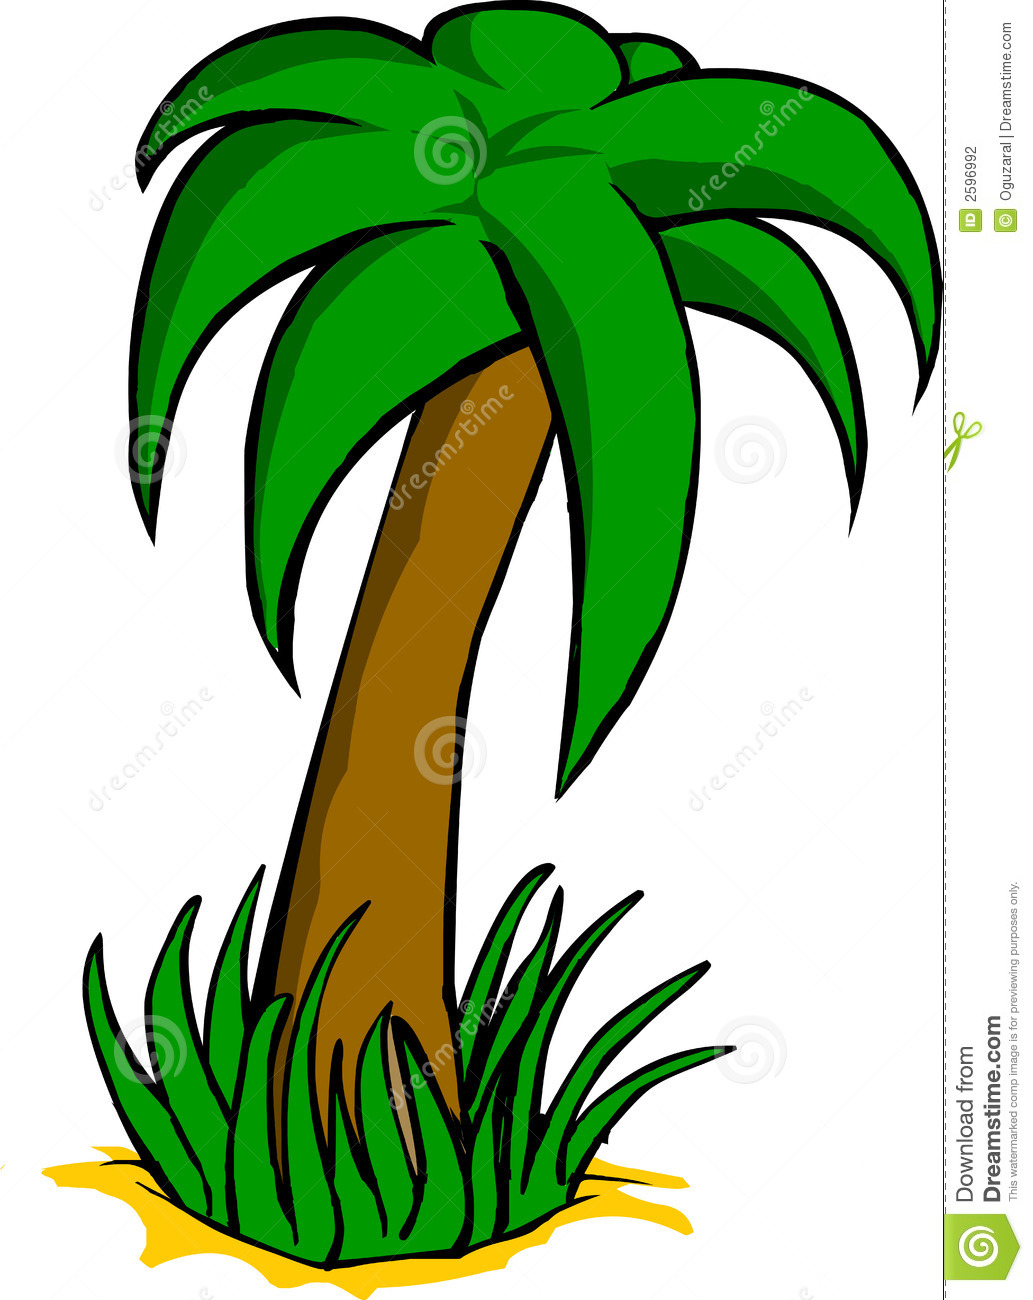 Jungle Clipart : jungle, clipart, Jungle, Trees-, Clipart,, Download, Clipart, Library